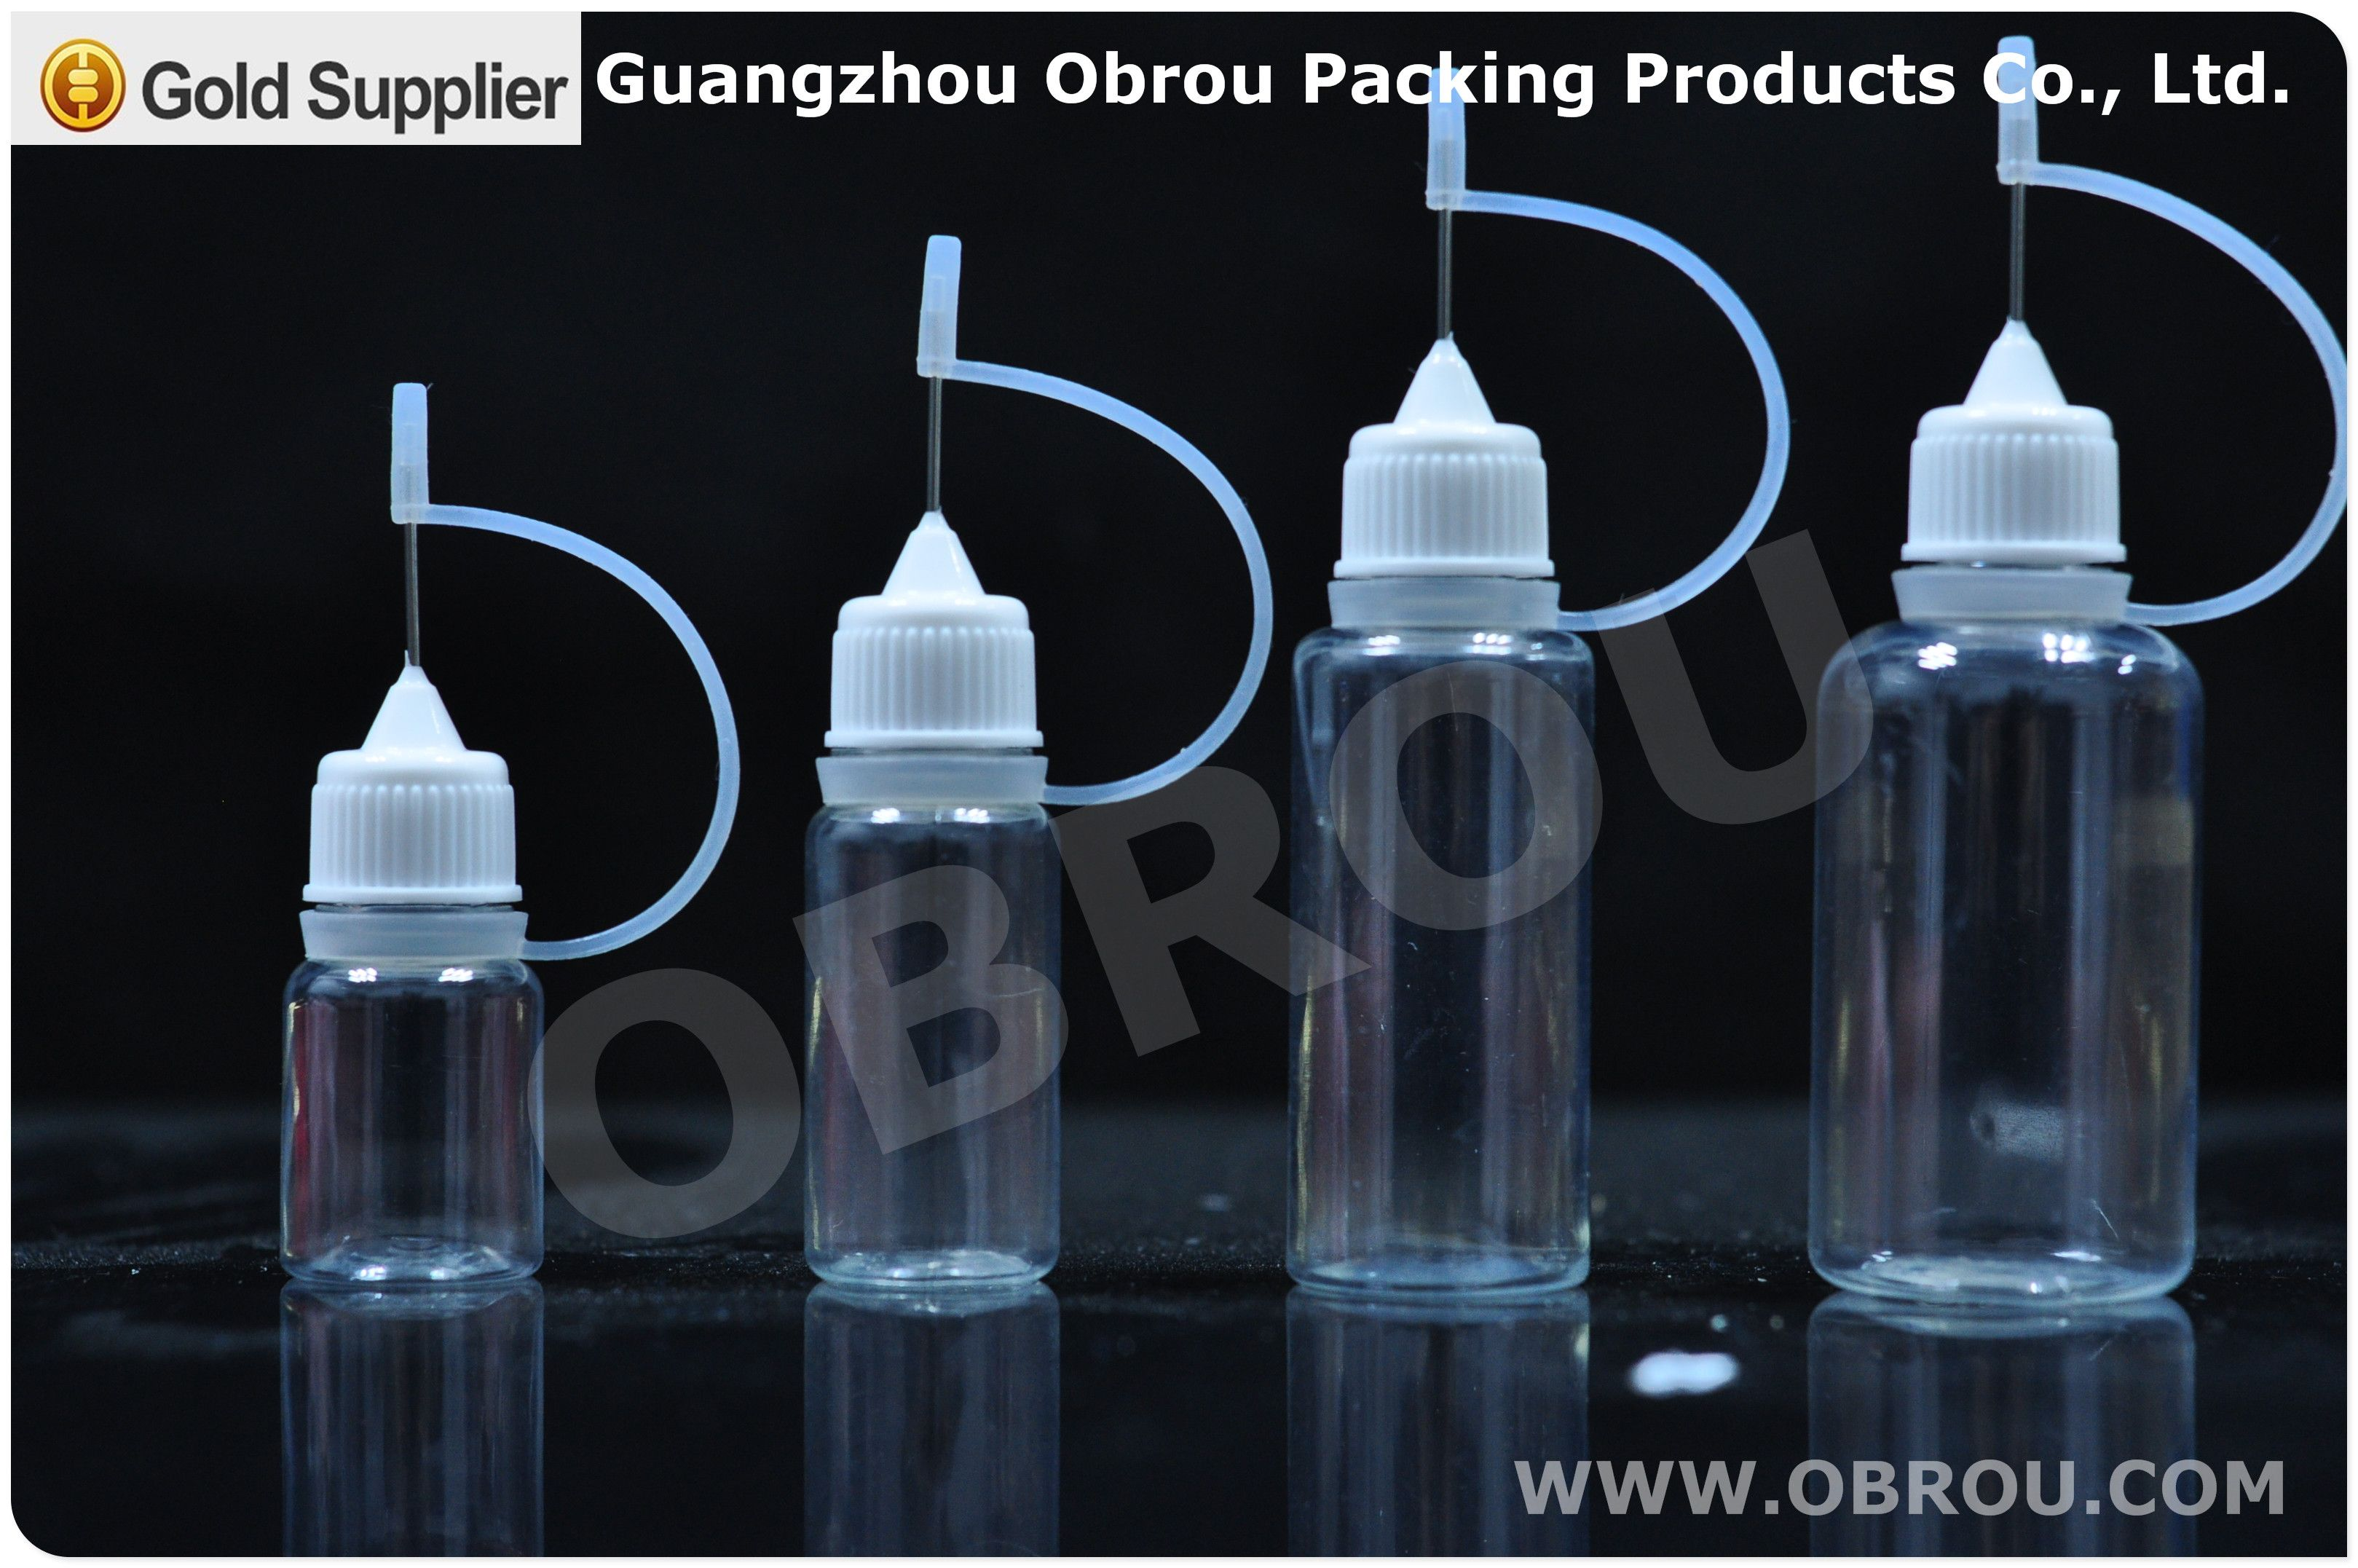 E Liquid Bottles 10ml Plastic Clear Pet Long Thin Needle Tip Eye Dropper Bottles With Childproof Caps Eliquid Bottle Bottle Dropper Bottles Eye Dropper Bottles